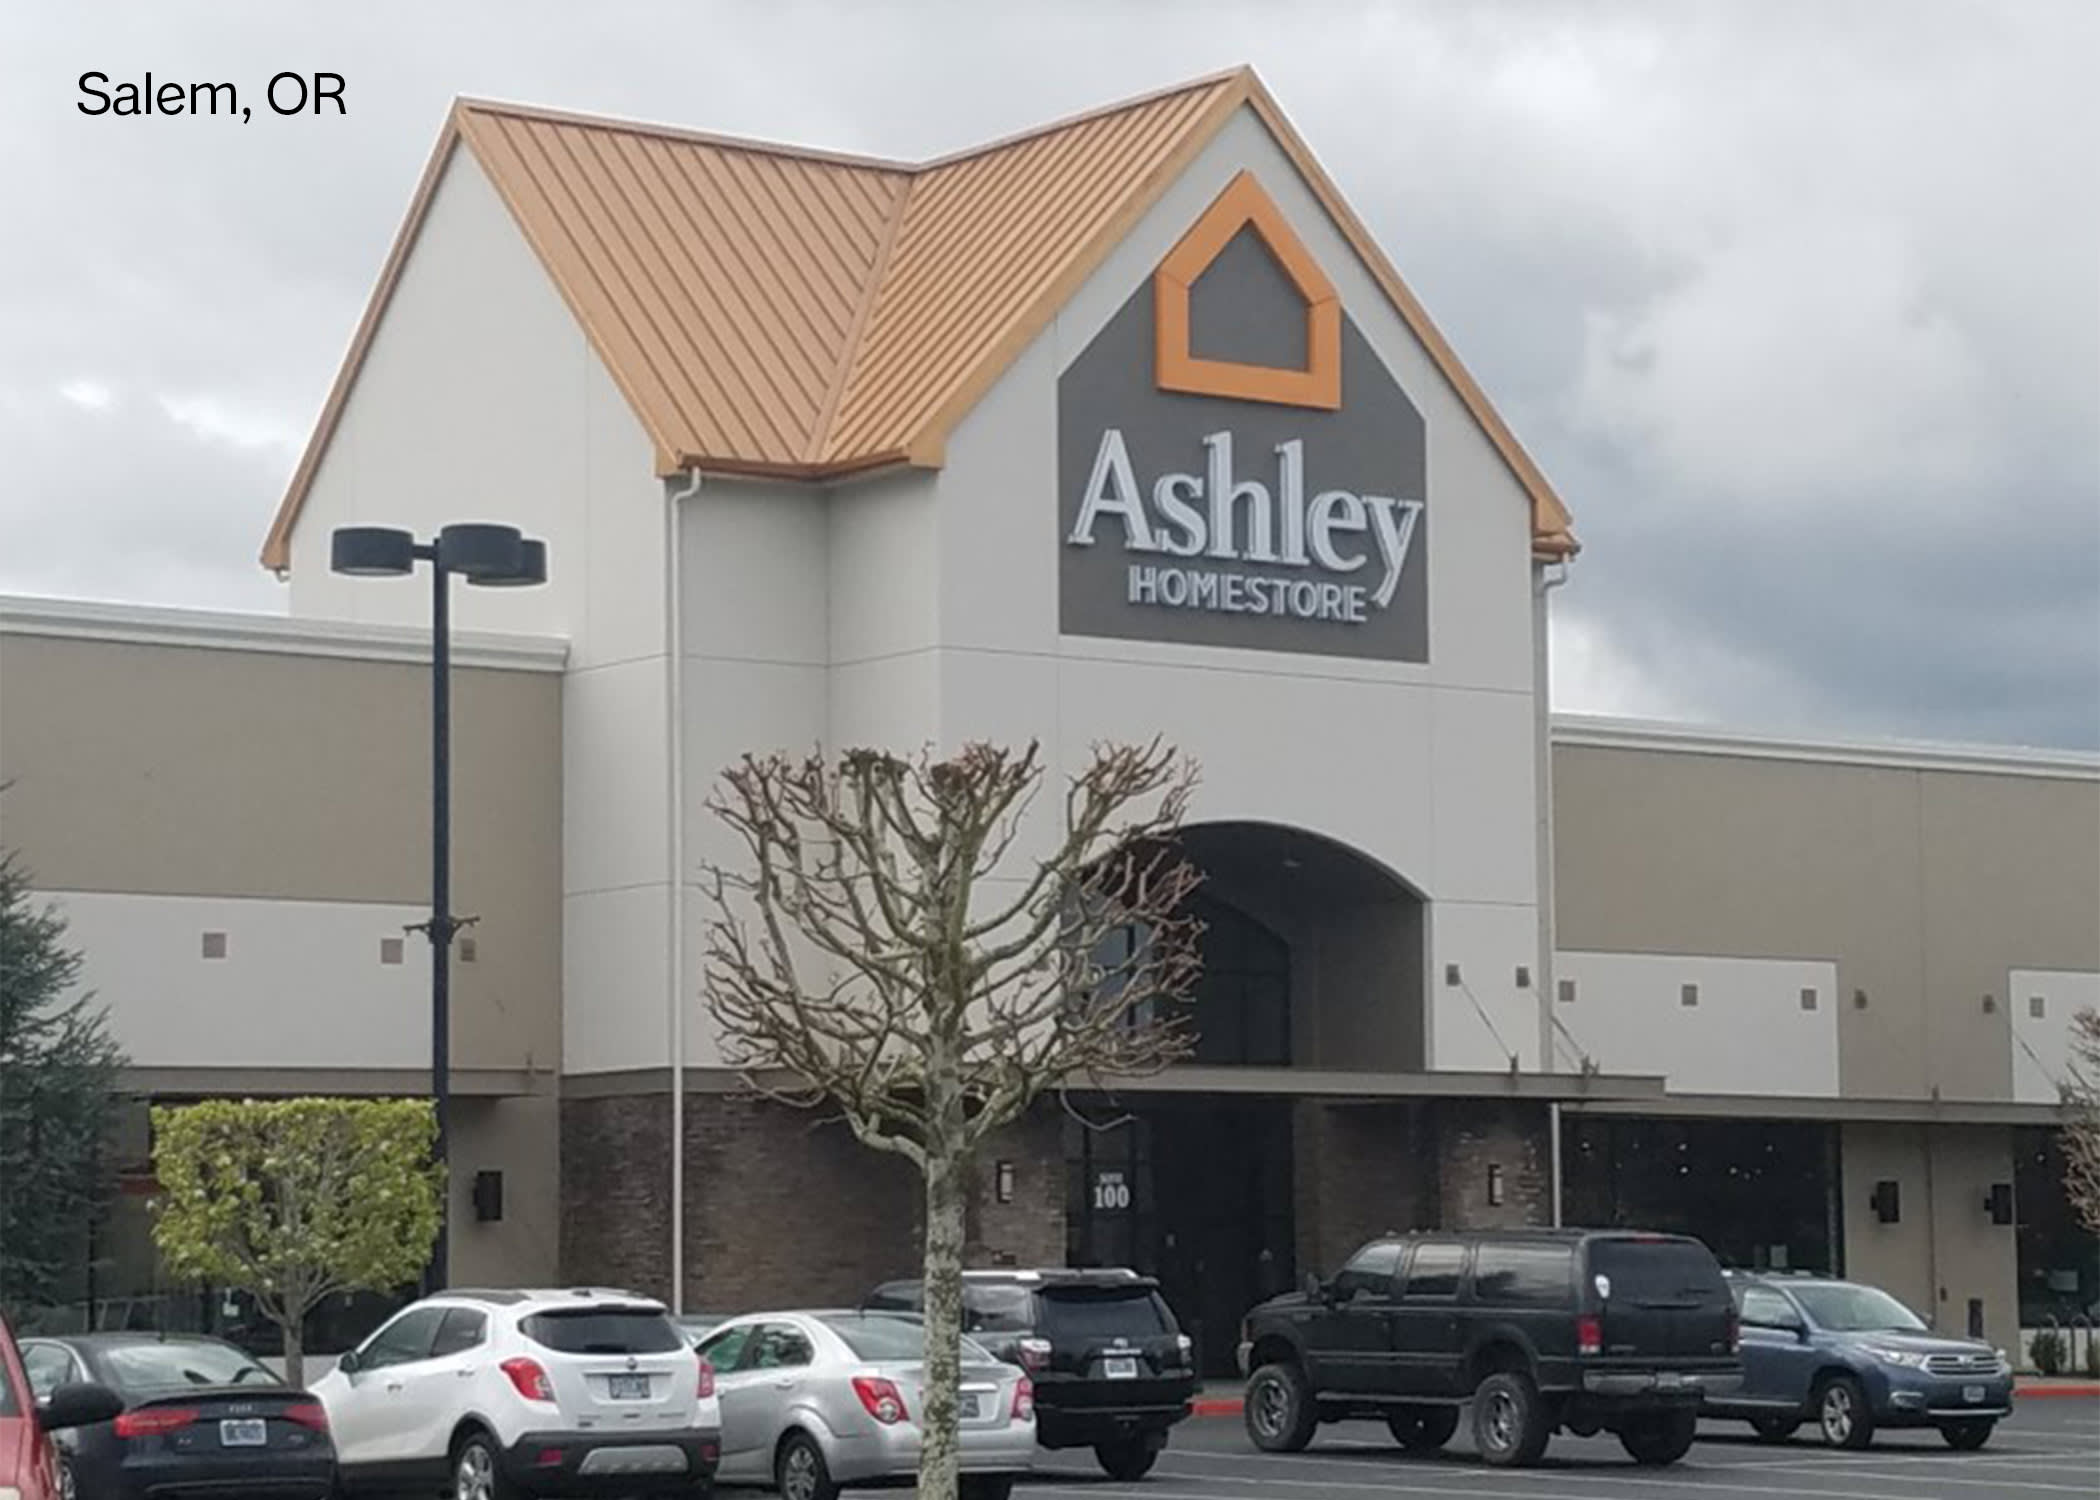 Furniture And Mattress Store At 3850 Hagers Grove Rd Se Salem Or Ashley Homestore